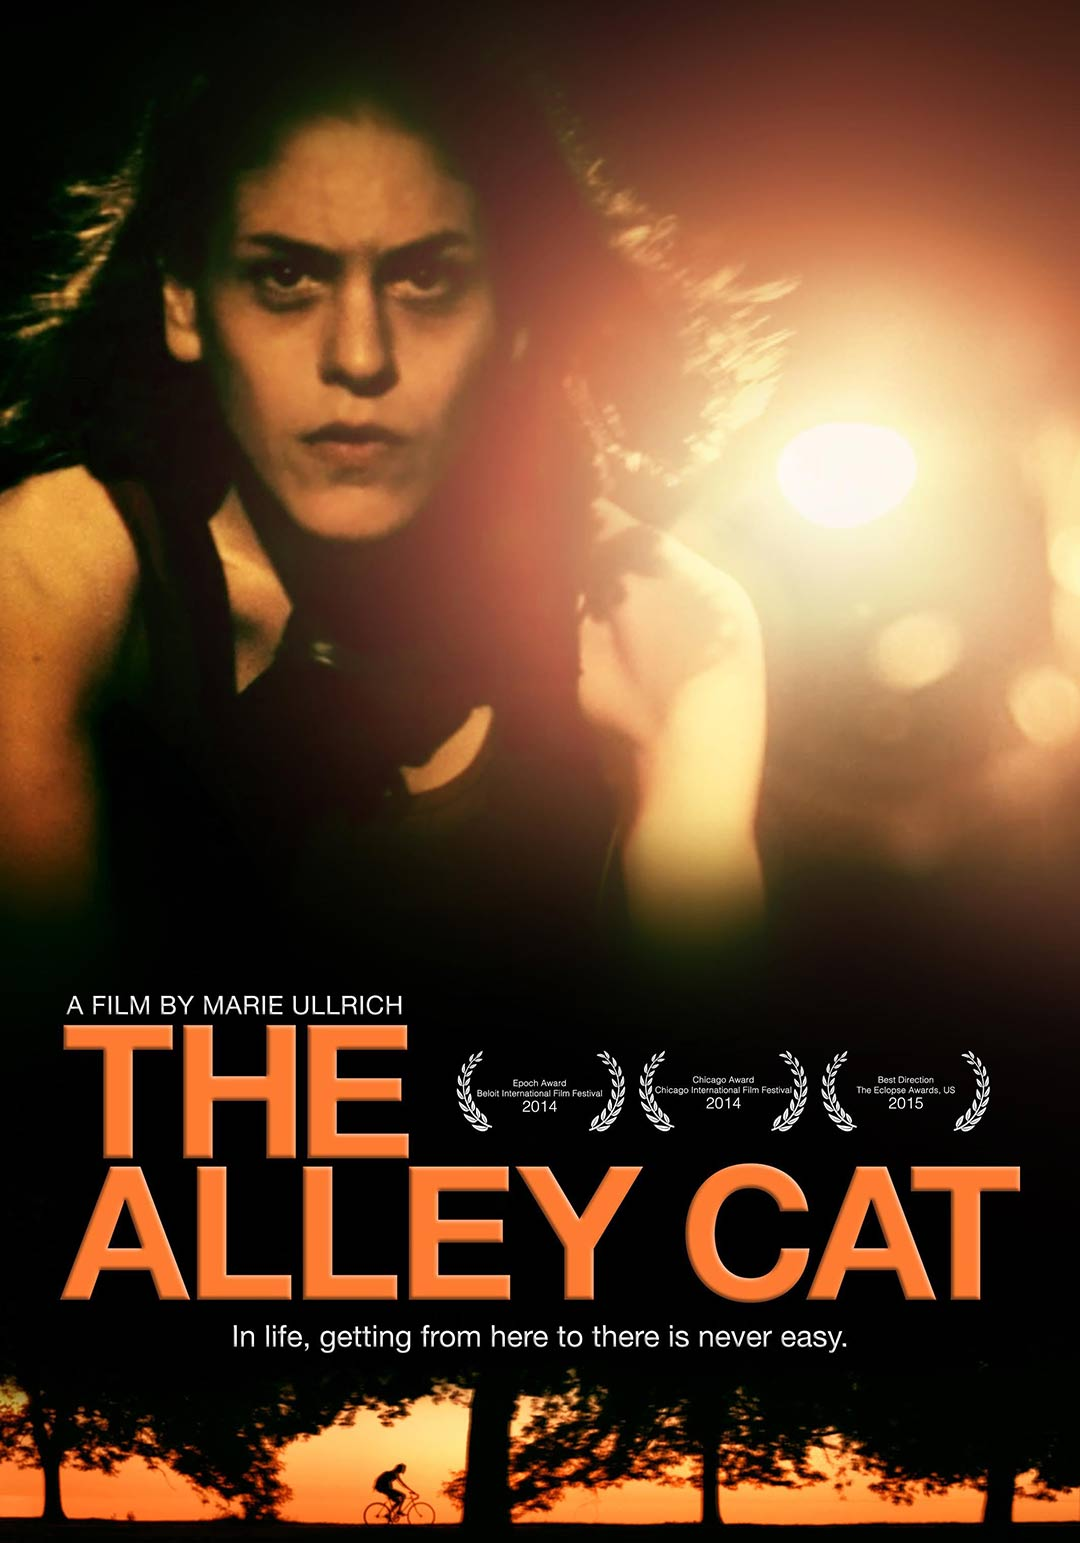 The-Alley-Cat-2016-YeniFragman